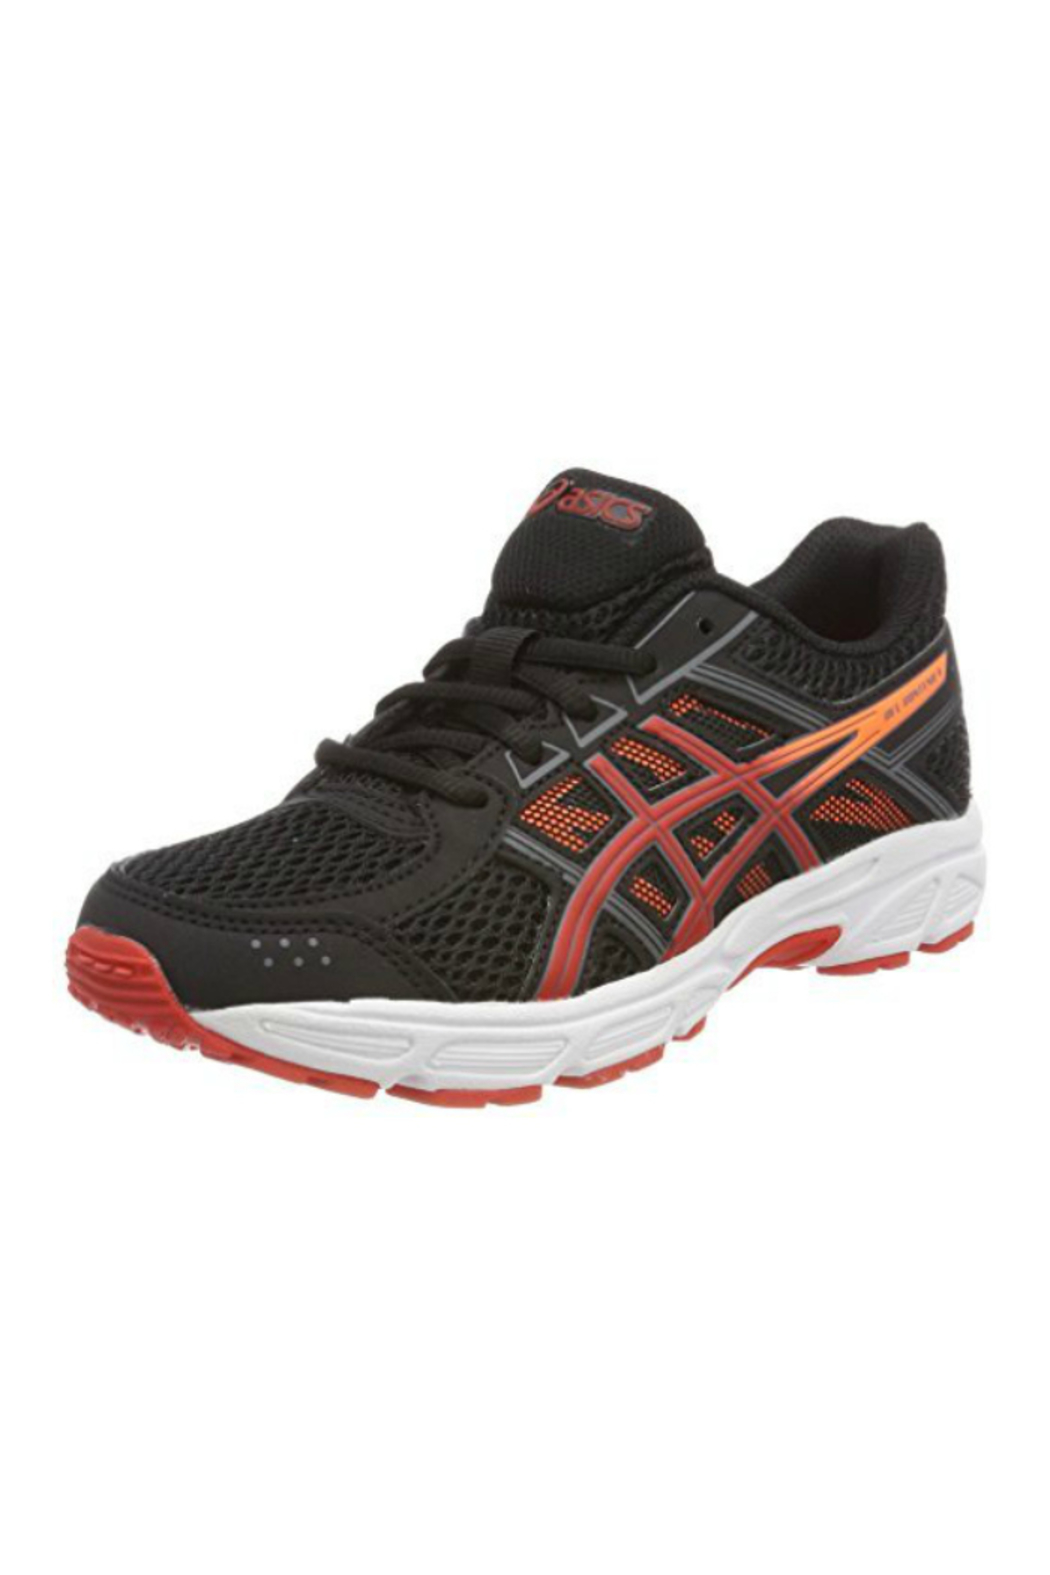 7a63121321f Asics Gel-Contend 4 GS from New Jersey by Suburban Shoes — Shoptiques